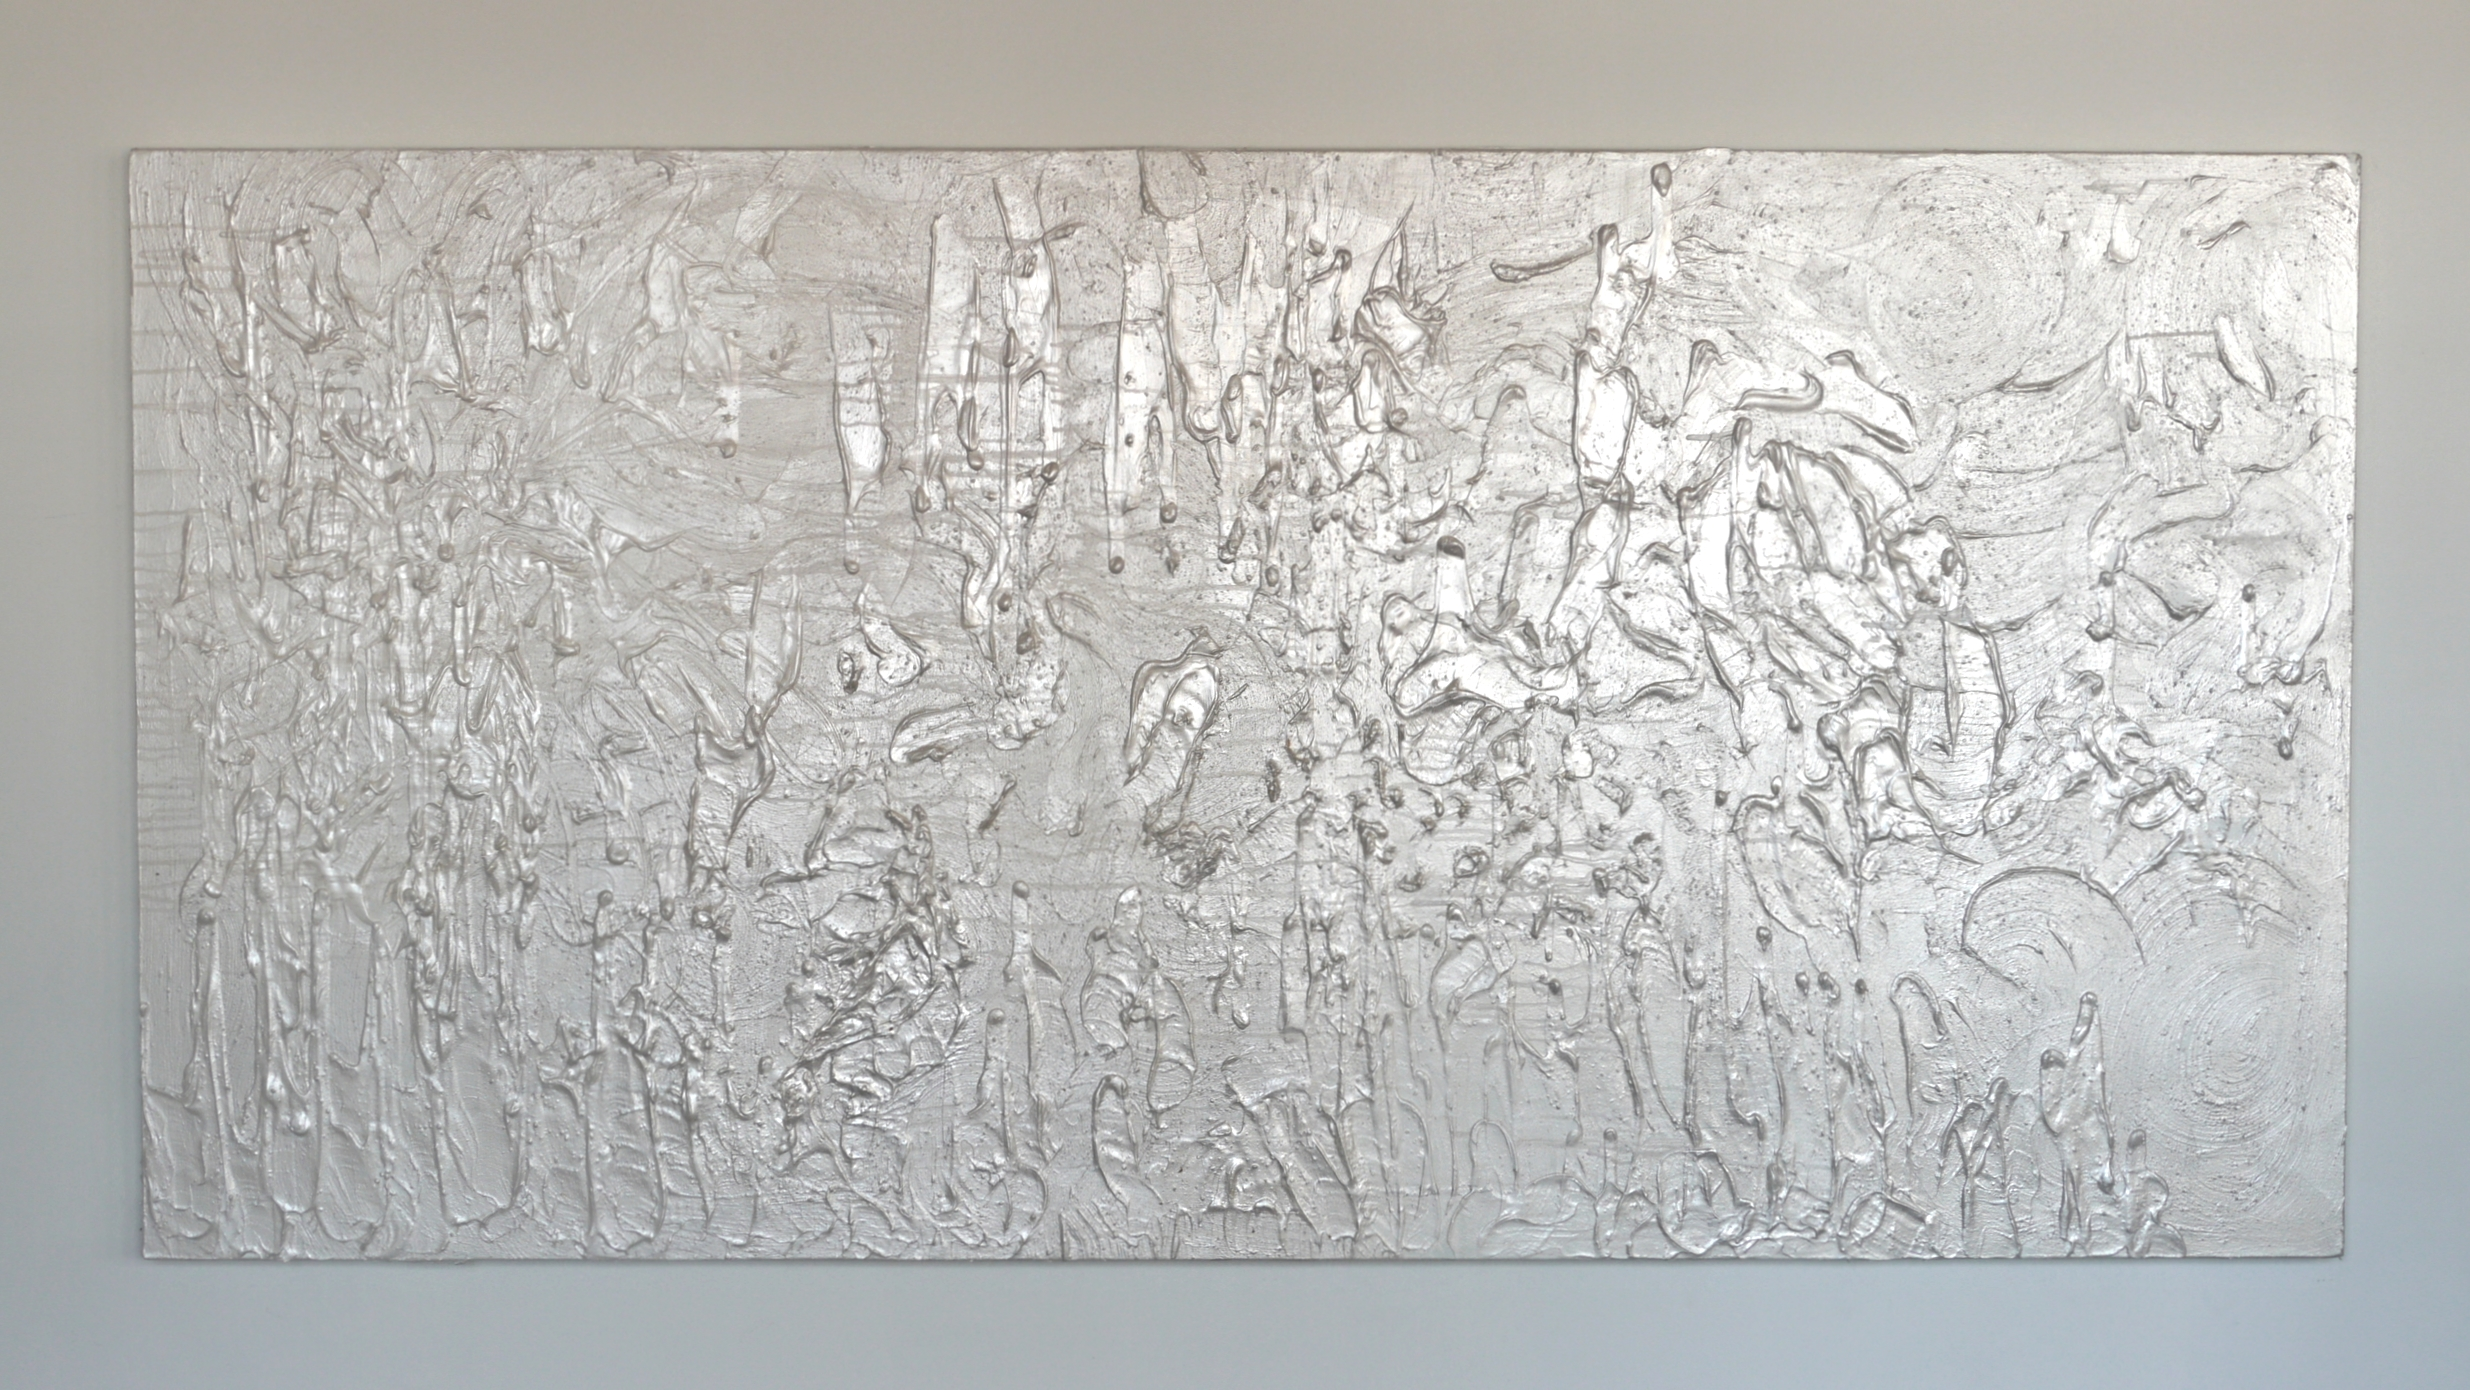 """Title : """"Soul Landscape I"""" 2015   Size : 4' by 8'   Price : $ 9,600.00   IN : MO_013"""